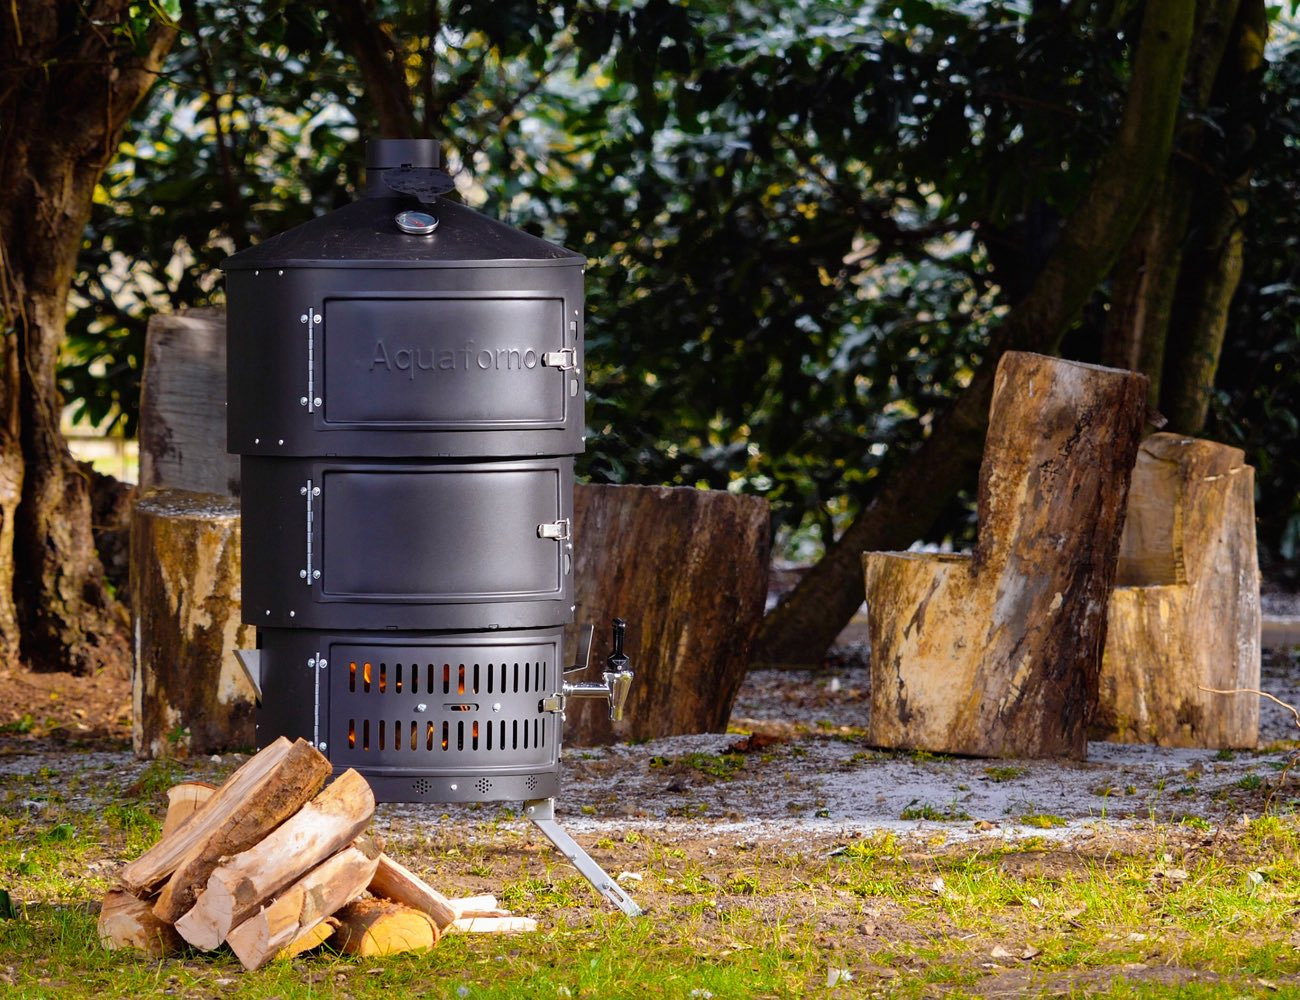 Aquaforno II Portable Outdoor Cooking Stove